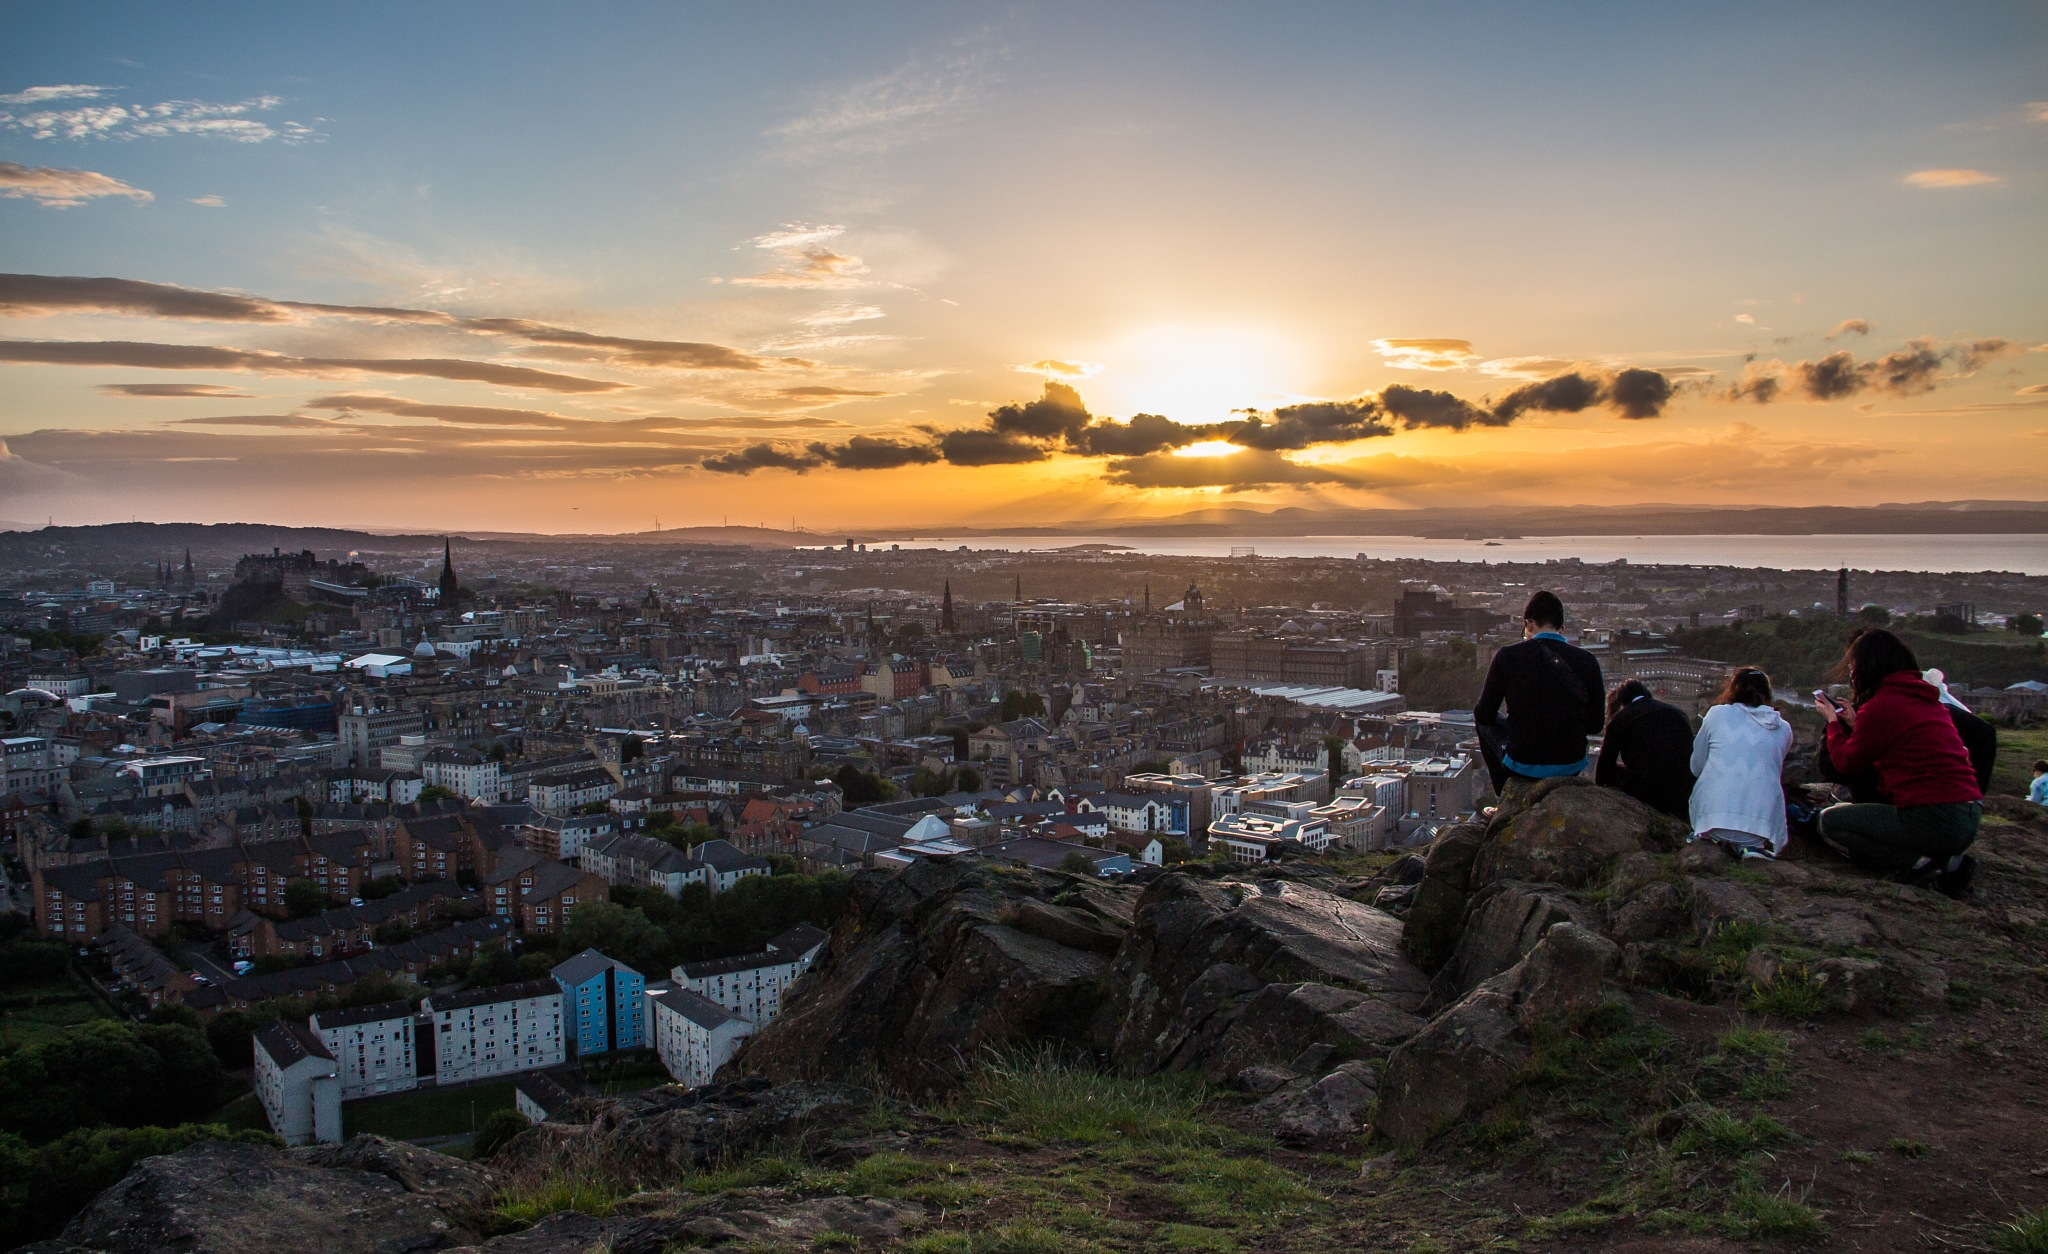 Edinburgh Sunset by Ben V